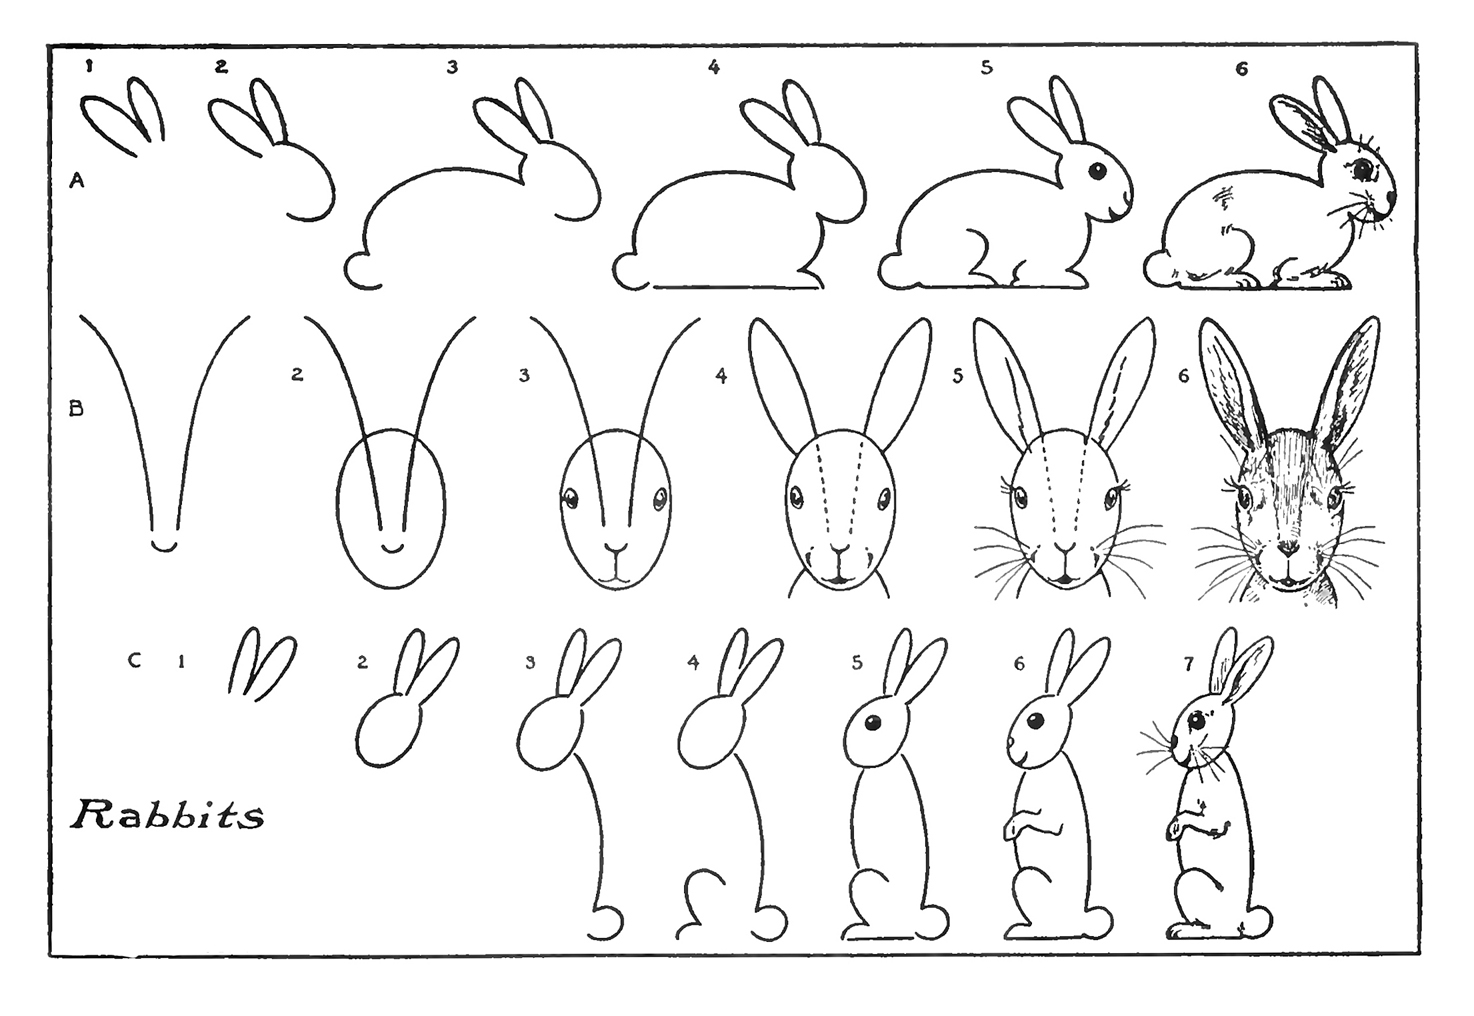 how to draw a geisha step by step how to draw a bunny easy the graphics fairy by how step step to geisha draw a